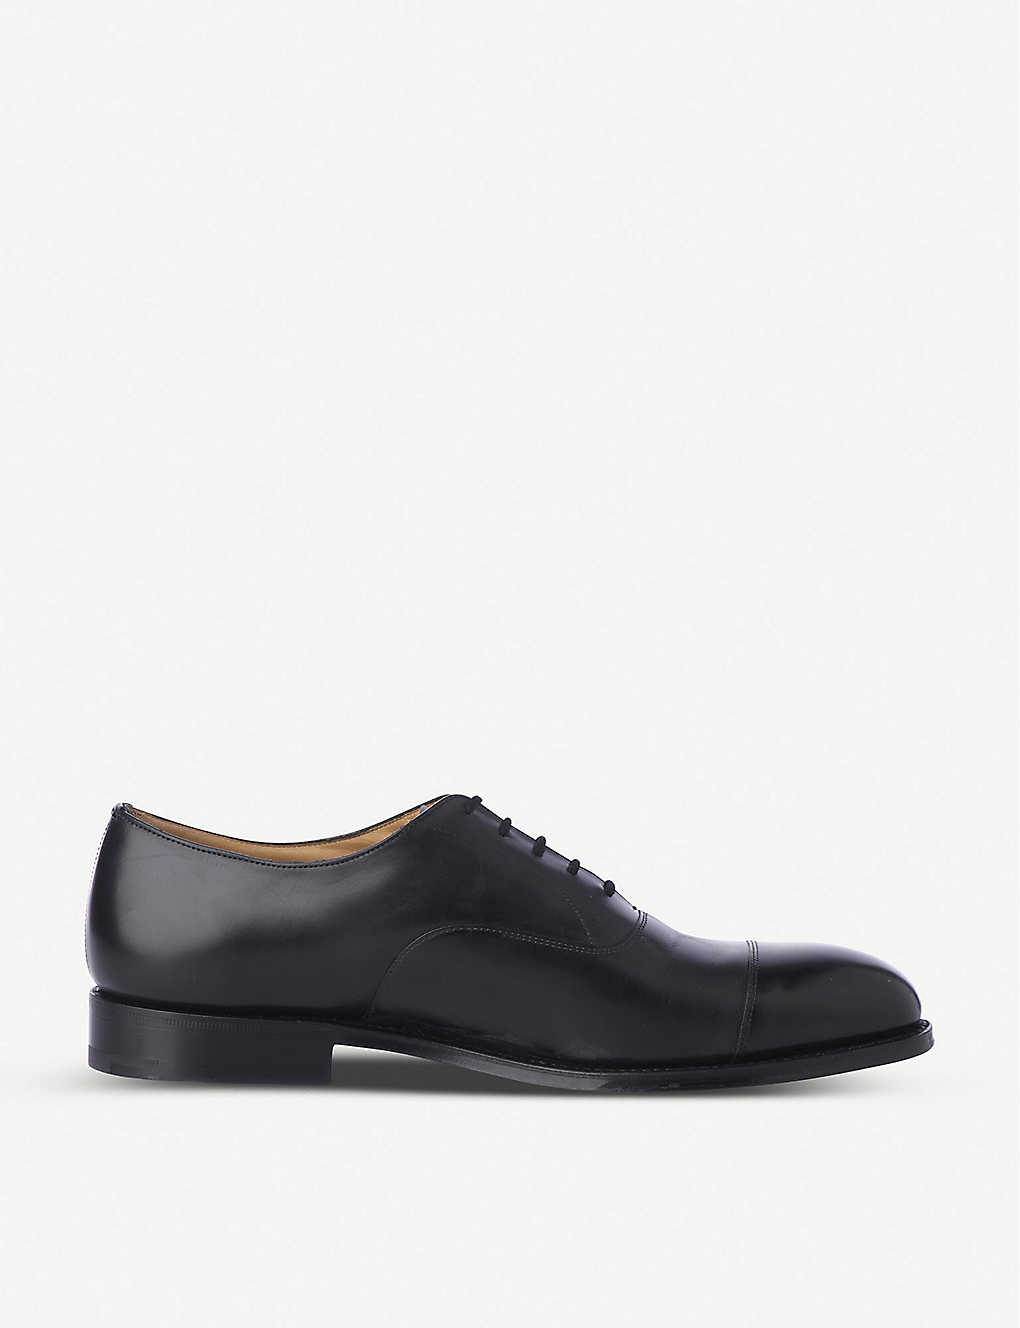 CHURCH: Consul G leather Oxford shoes